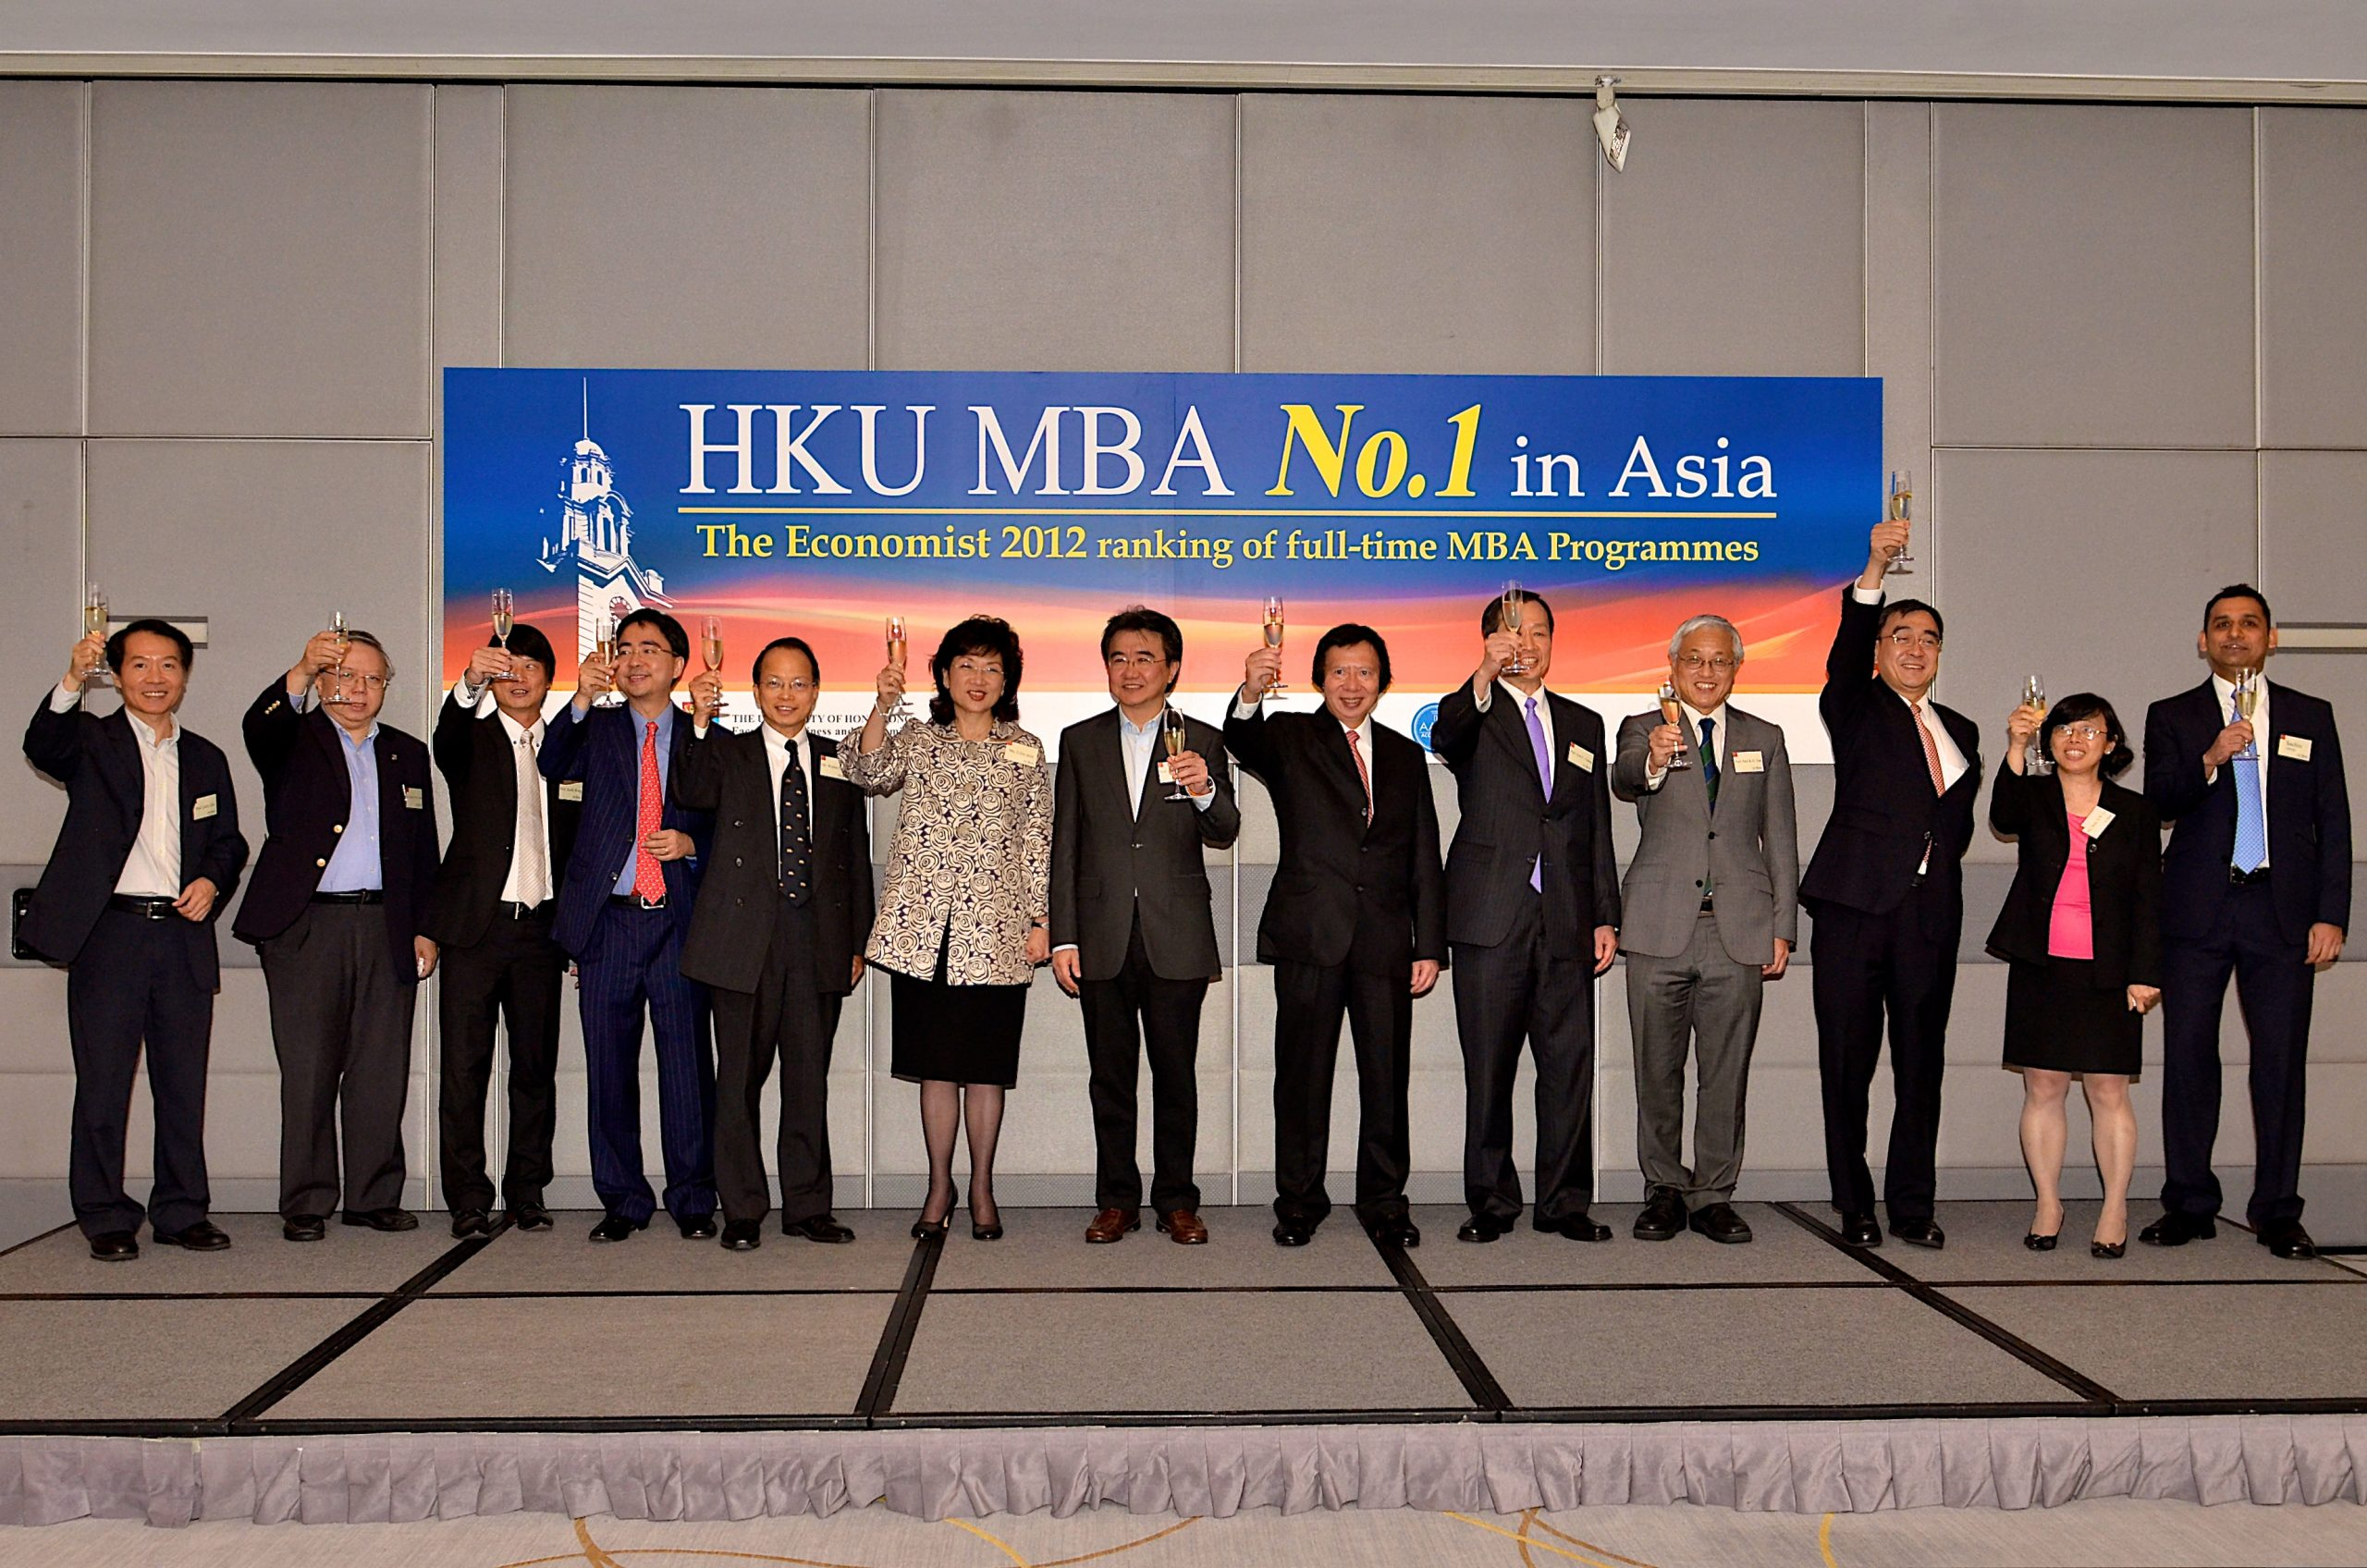 MBA ranked No. 1 in Asia (The Economist)